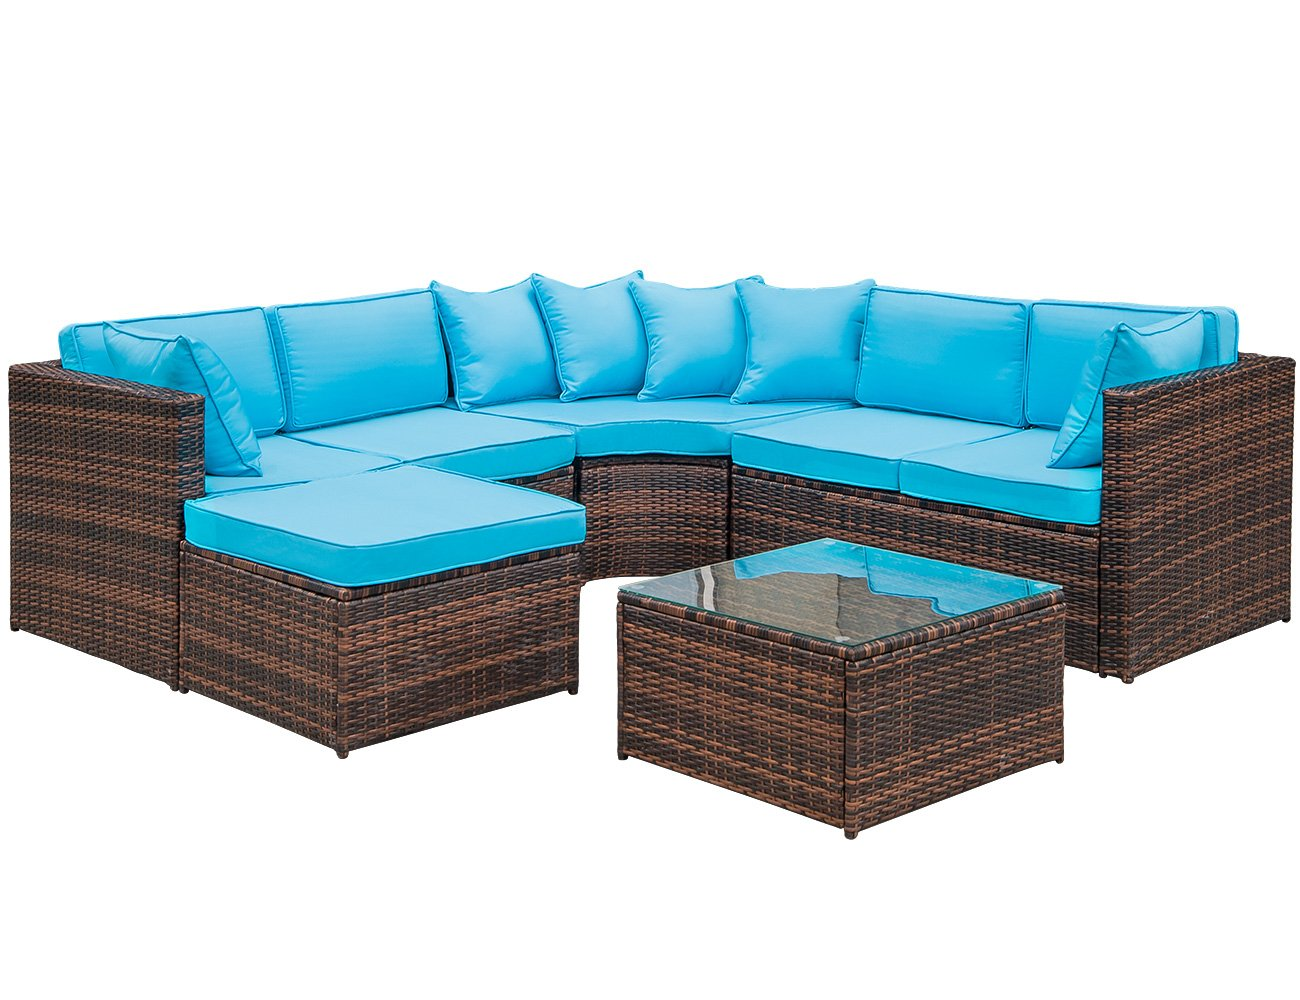 LZ LEISURE ZONE 5-Piece Patio Furniture Set Outdoor Wicker Sofa Sectional Conversation Set with Blue Cushions - This wicker Sectional Sofa Set includes 1 x corner sofa -2 x loveseat -1 x ottoman-1 x tea table with clear tempered glass -6x seat cushions -4 x back cushions-6x pillows The cambered sectional sofa design provides more seating area with which you may entertain more guests Crafted of high quality PE rattan and powder coated steel frame ensure your sofa for years to come - patio-furniture, patio, conversation-sets - 71JrBdL03sL -